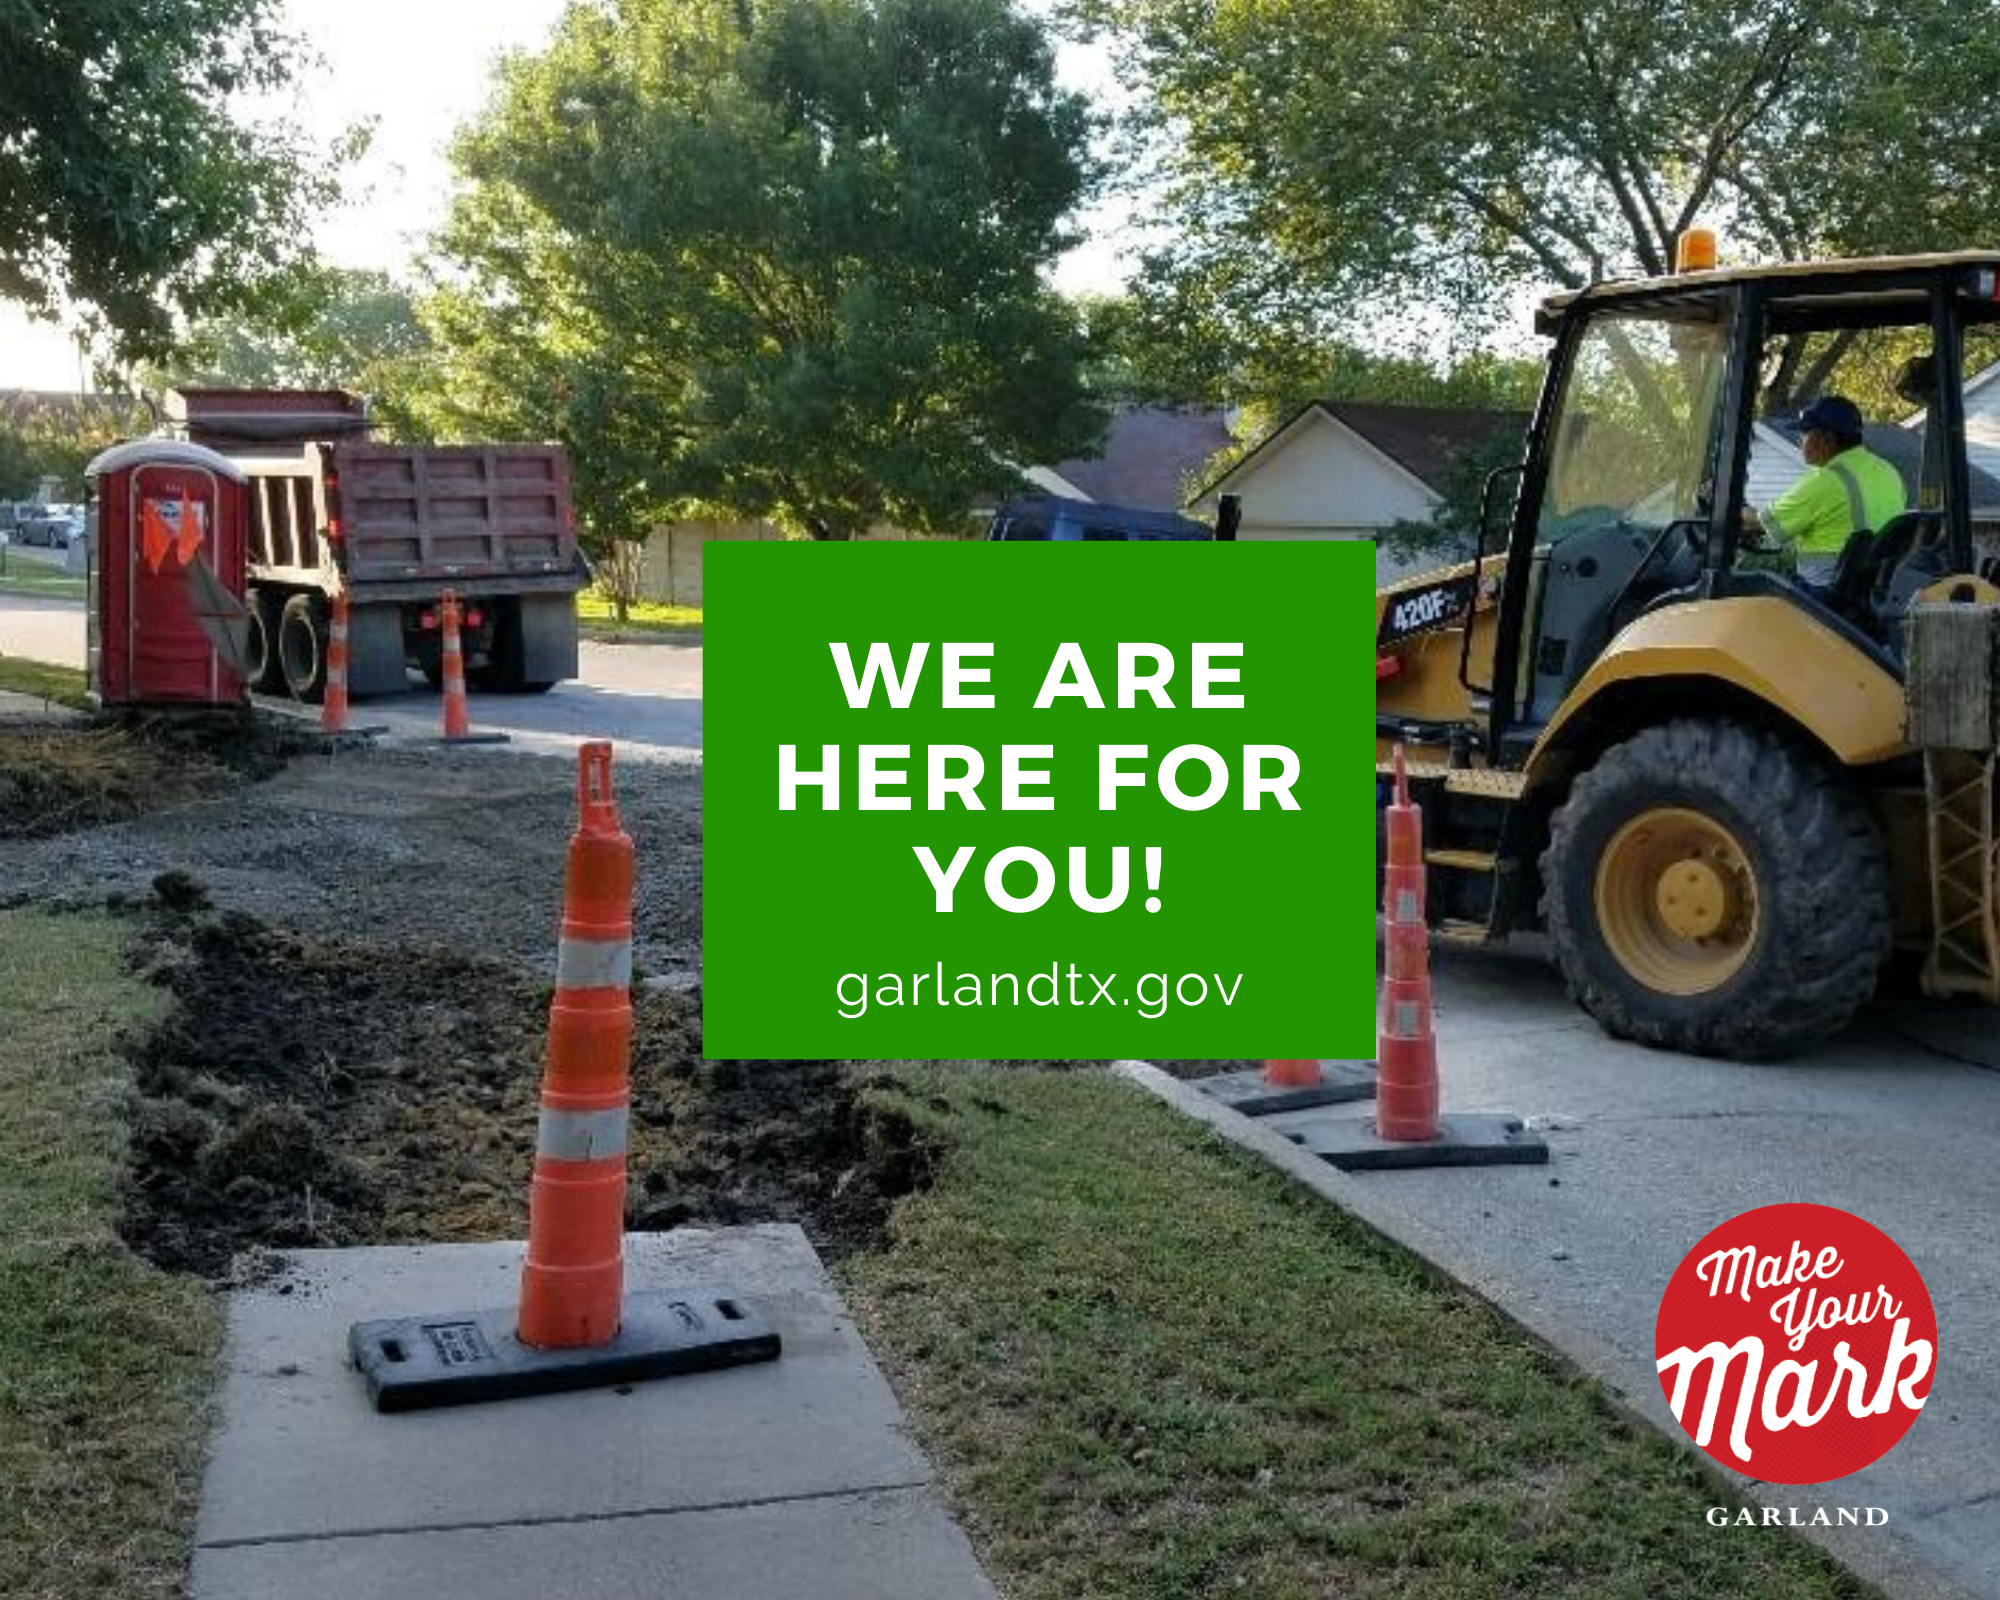 The Street Department is here for you, Garland!